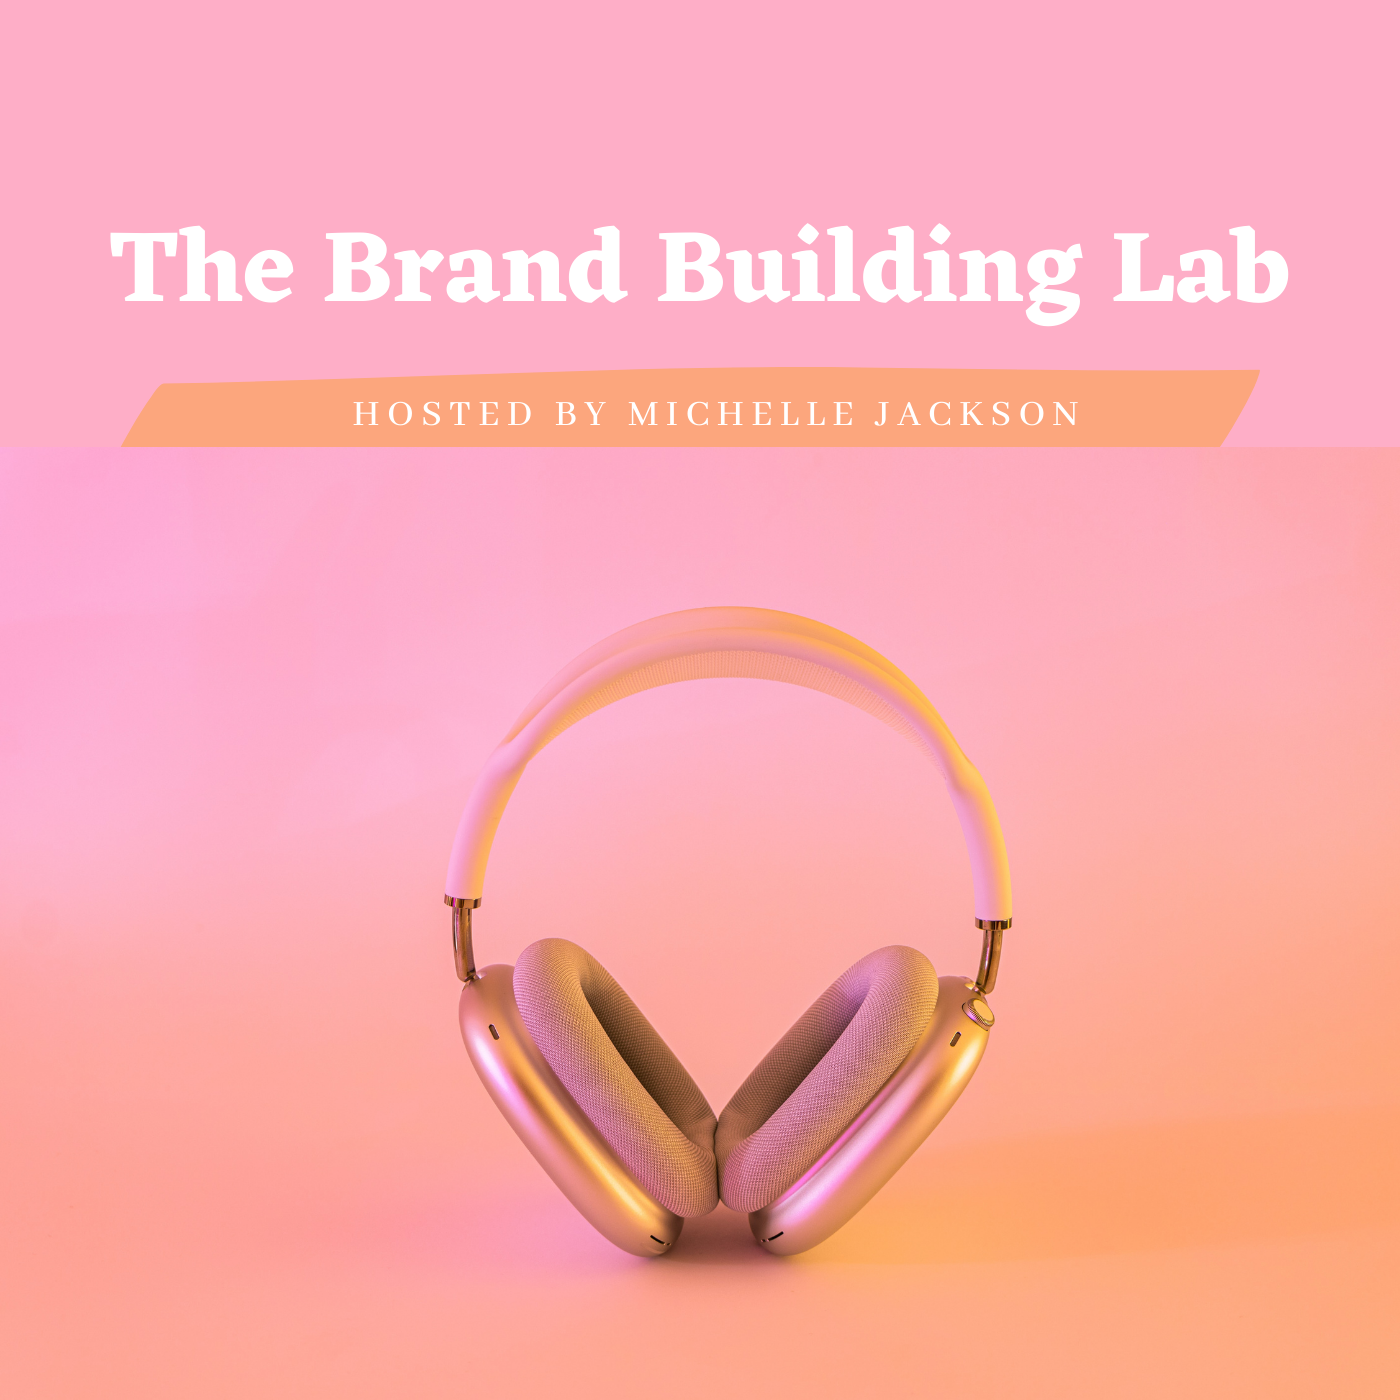 The Brand Building Lab